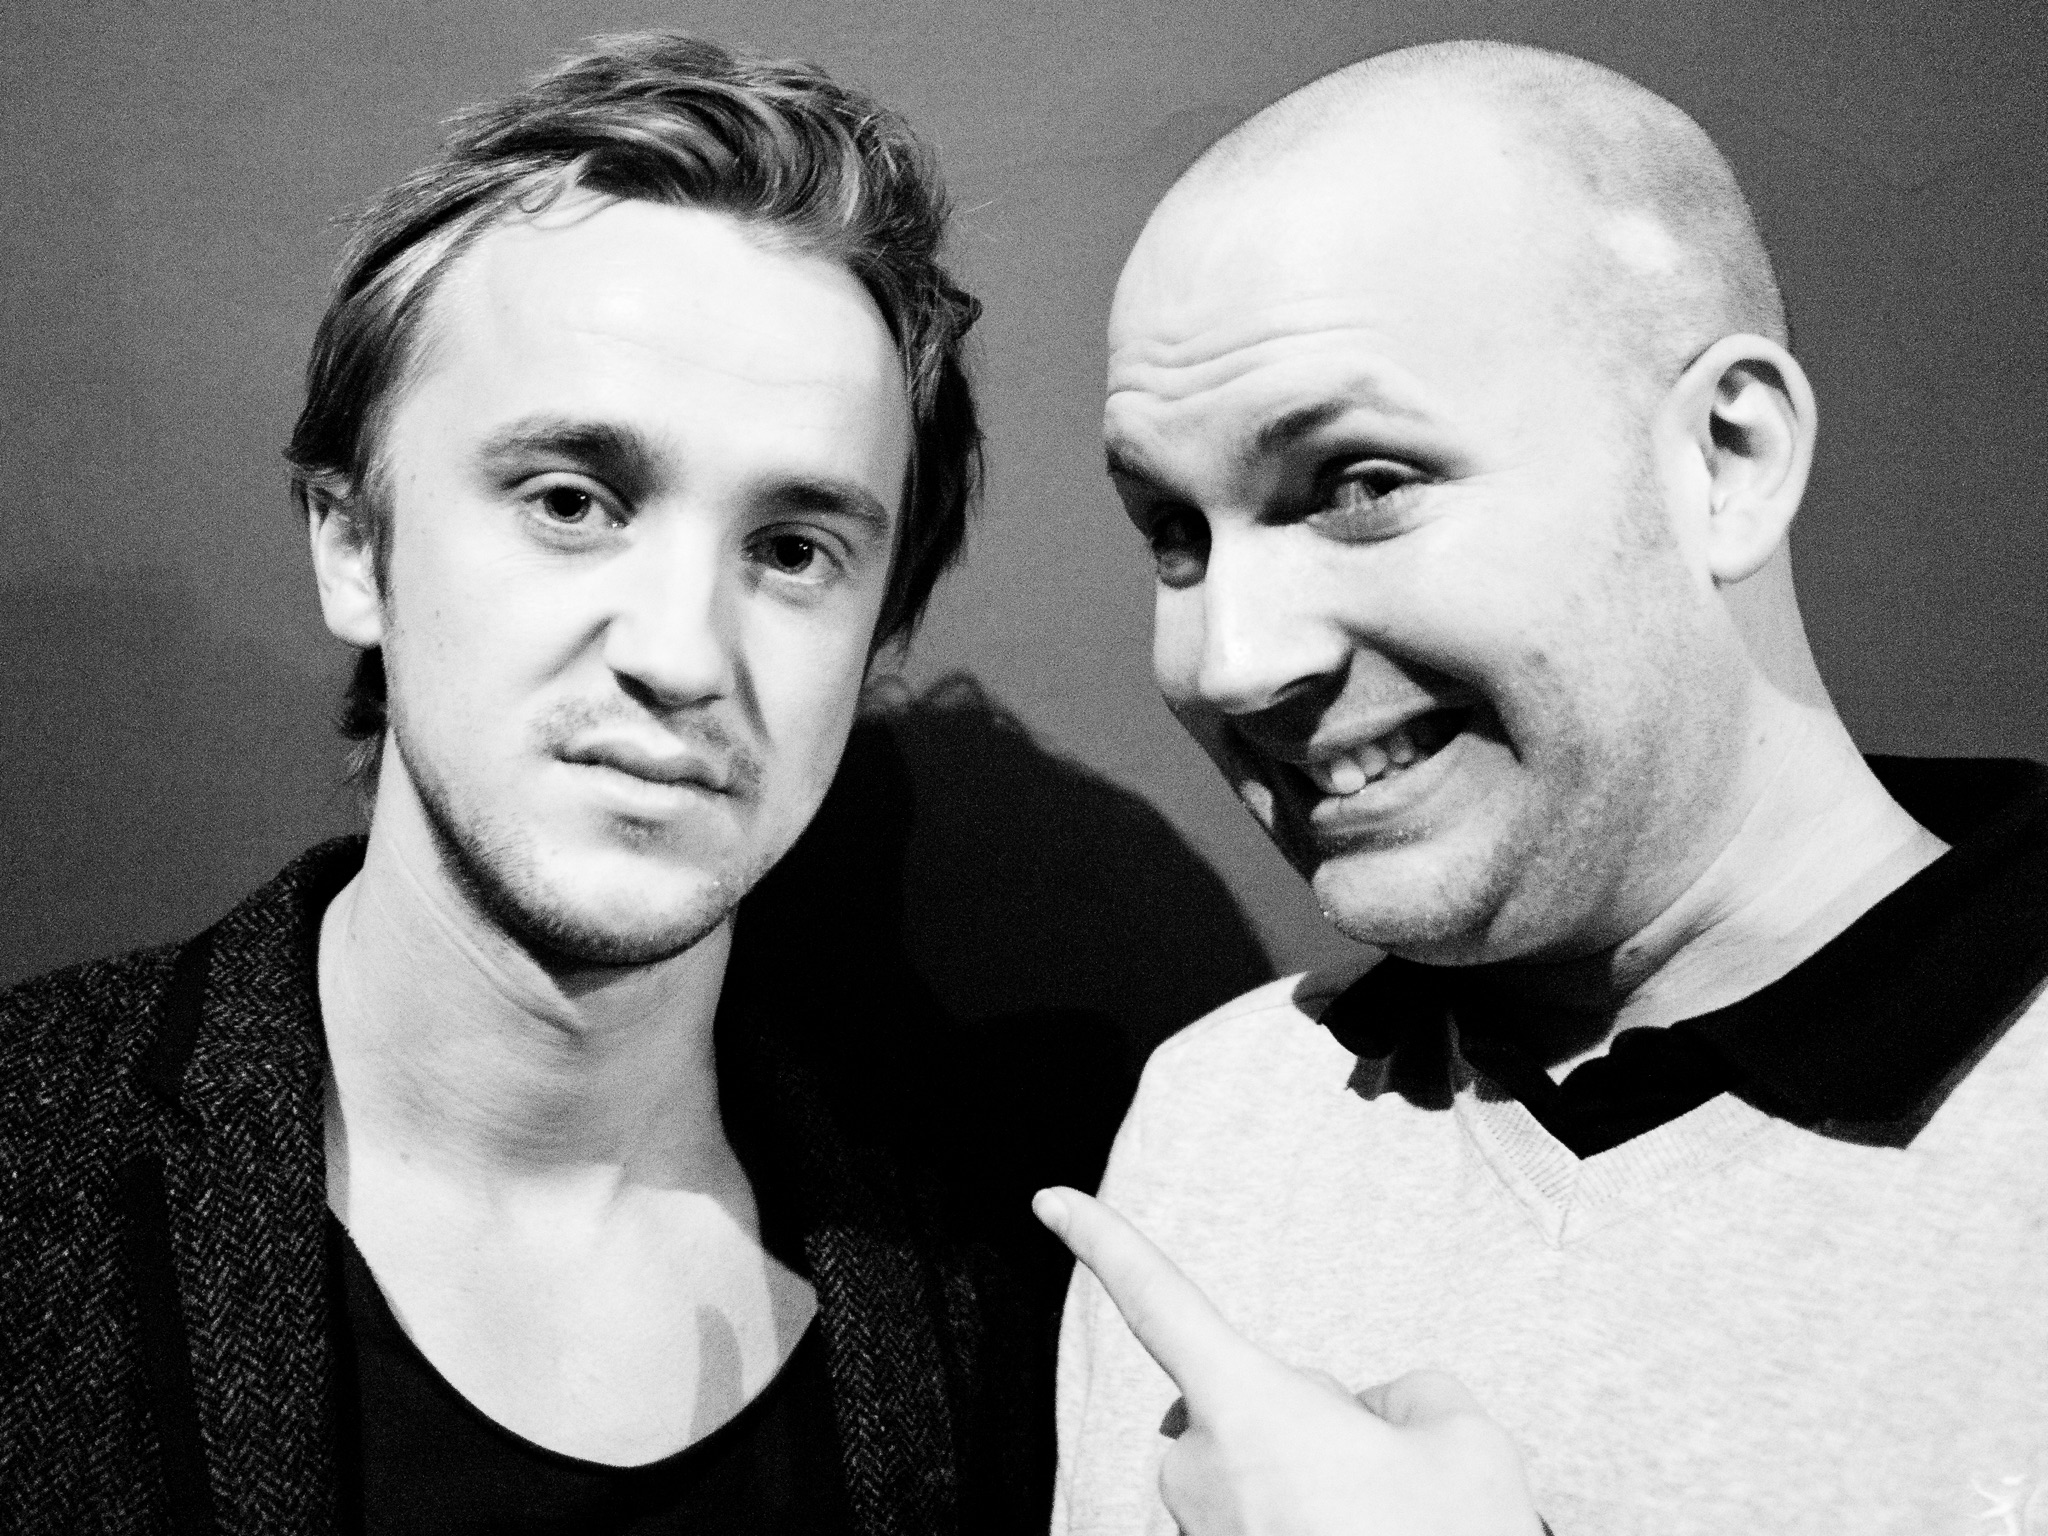 Who's Jack Magazine Editorial Photoshoot Celebrity Actor Tom Felton Harry Potter Draco Malfoy Outtakes BTS Behind the Scenes Jay McLaughlin